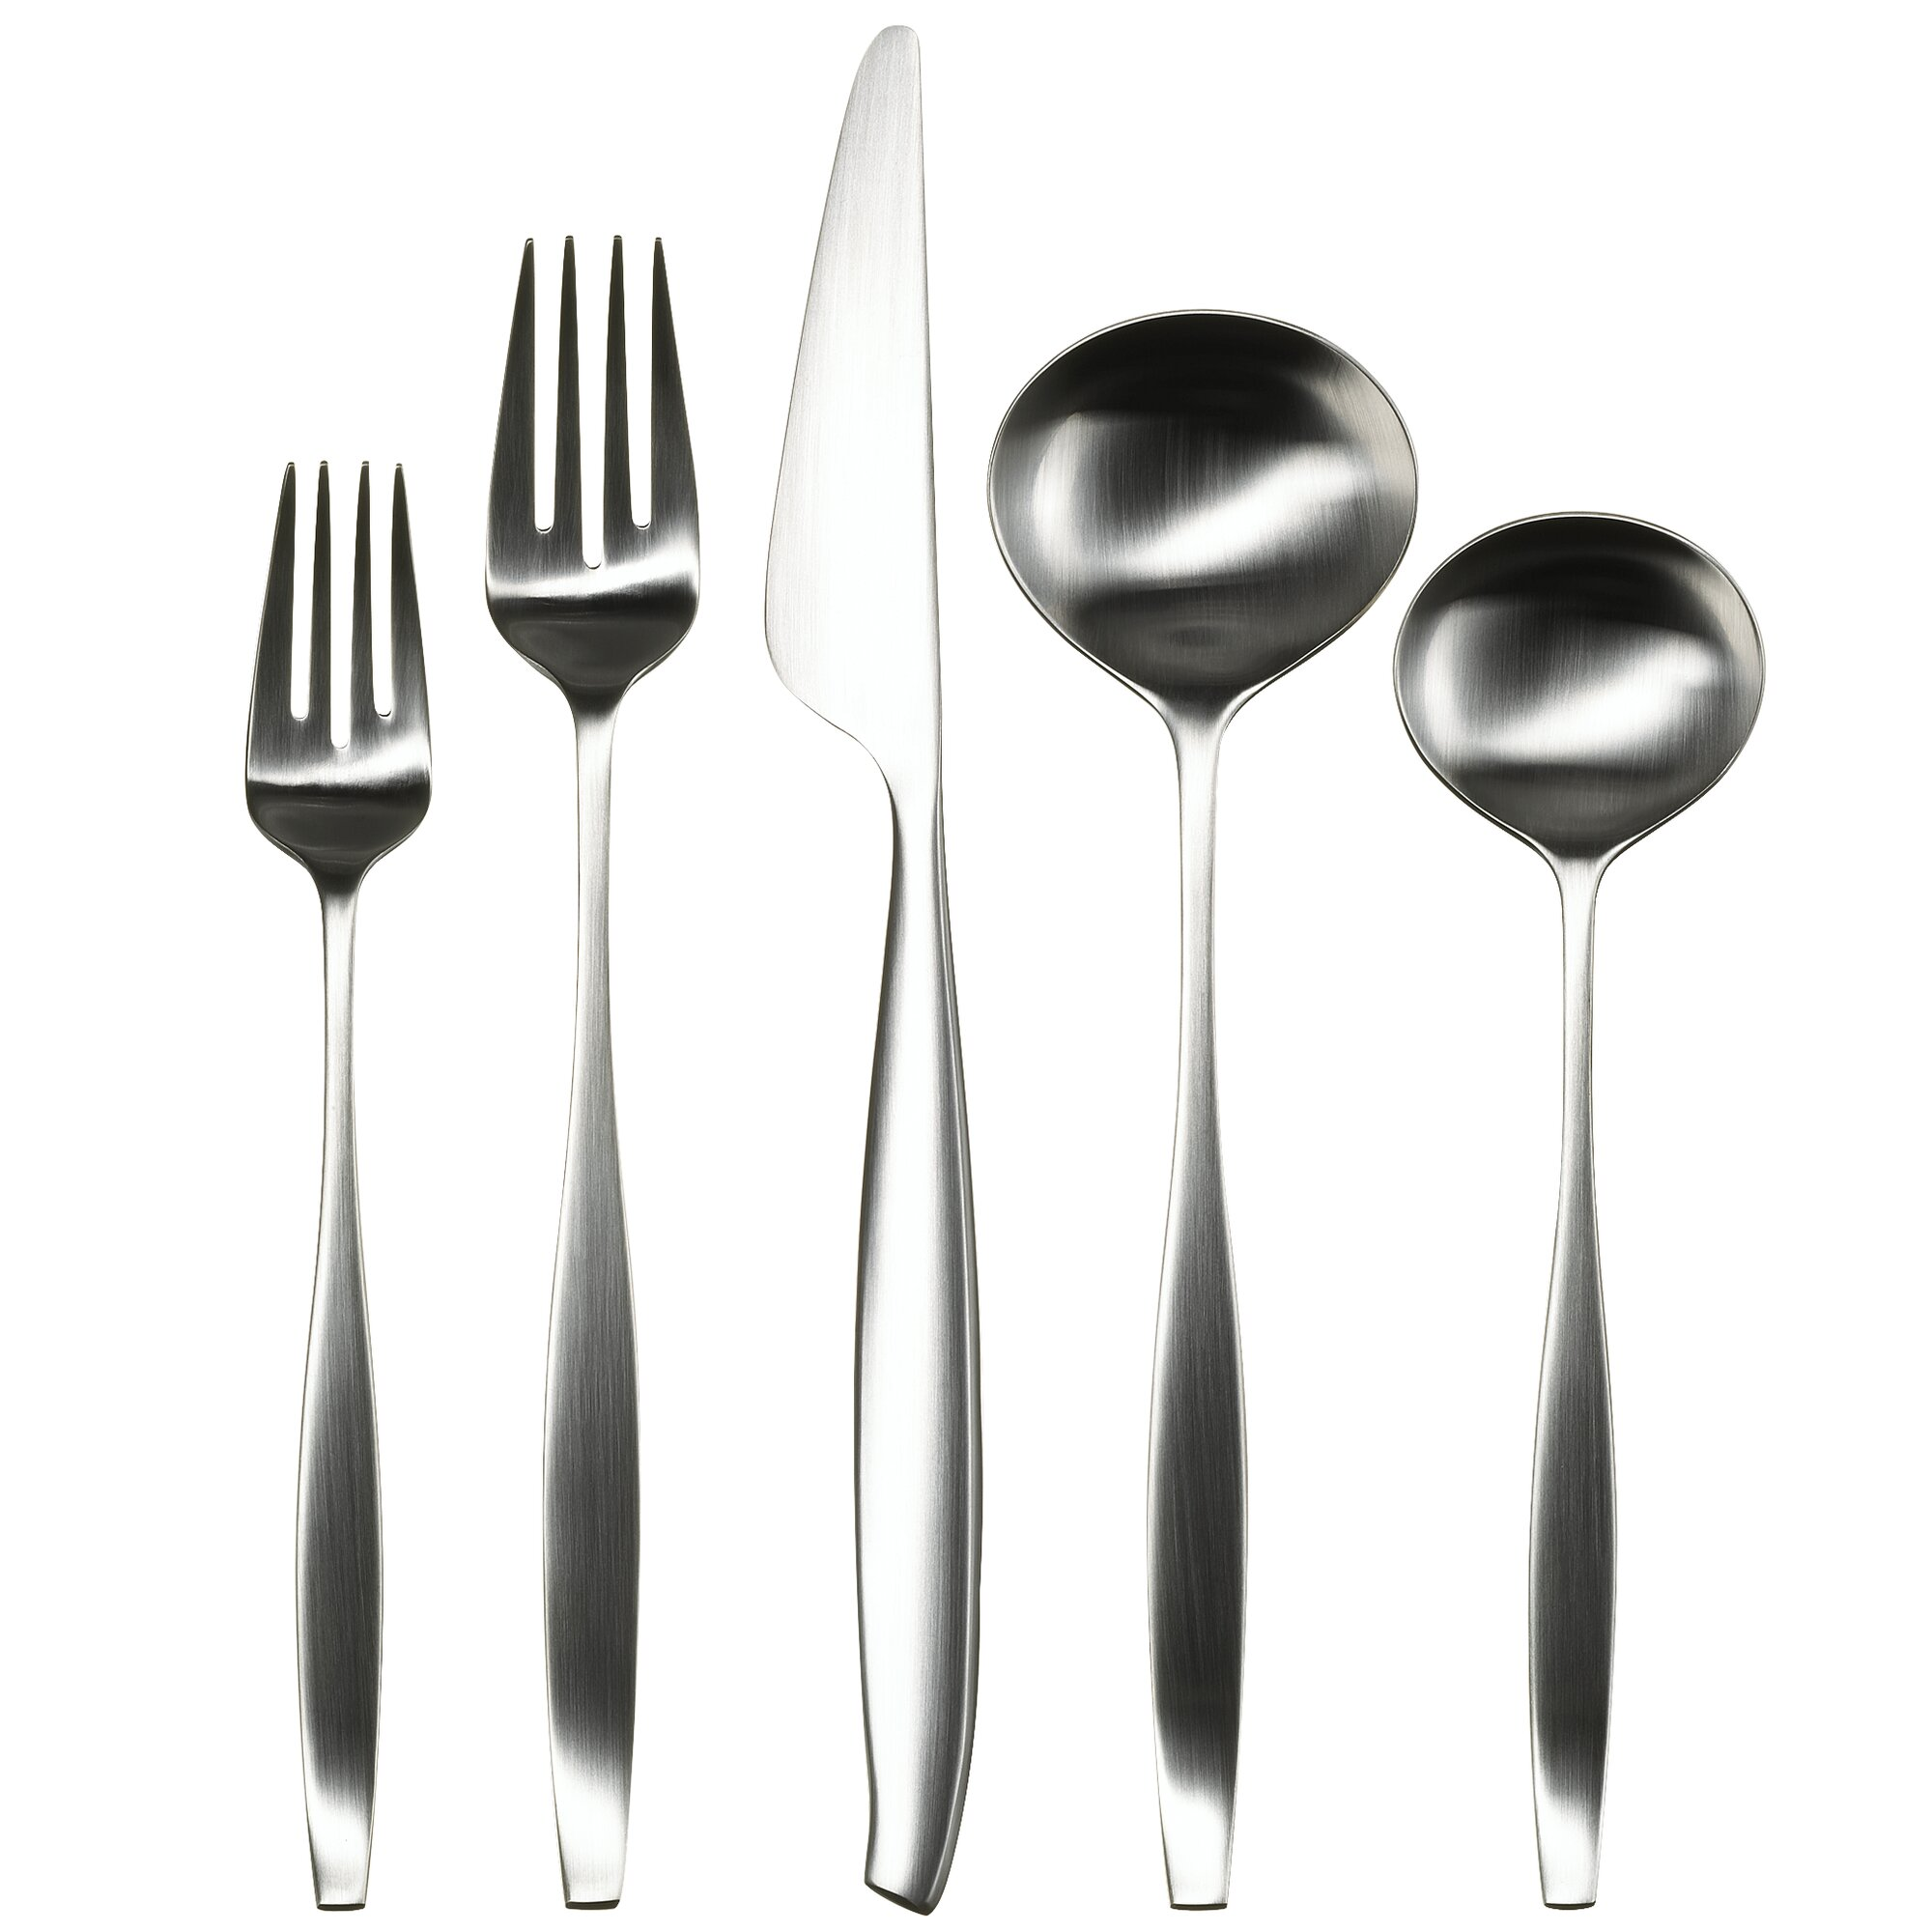 Gourmet settings everyday 20 piece balance flatware set - Gourmet settings silverware ...